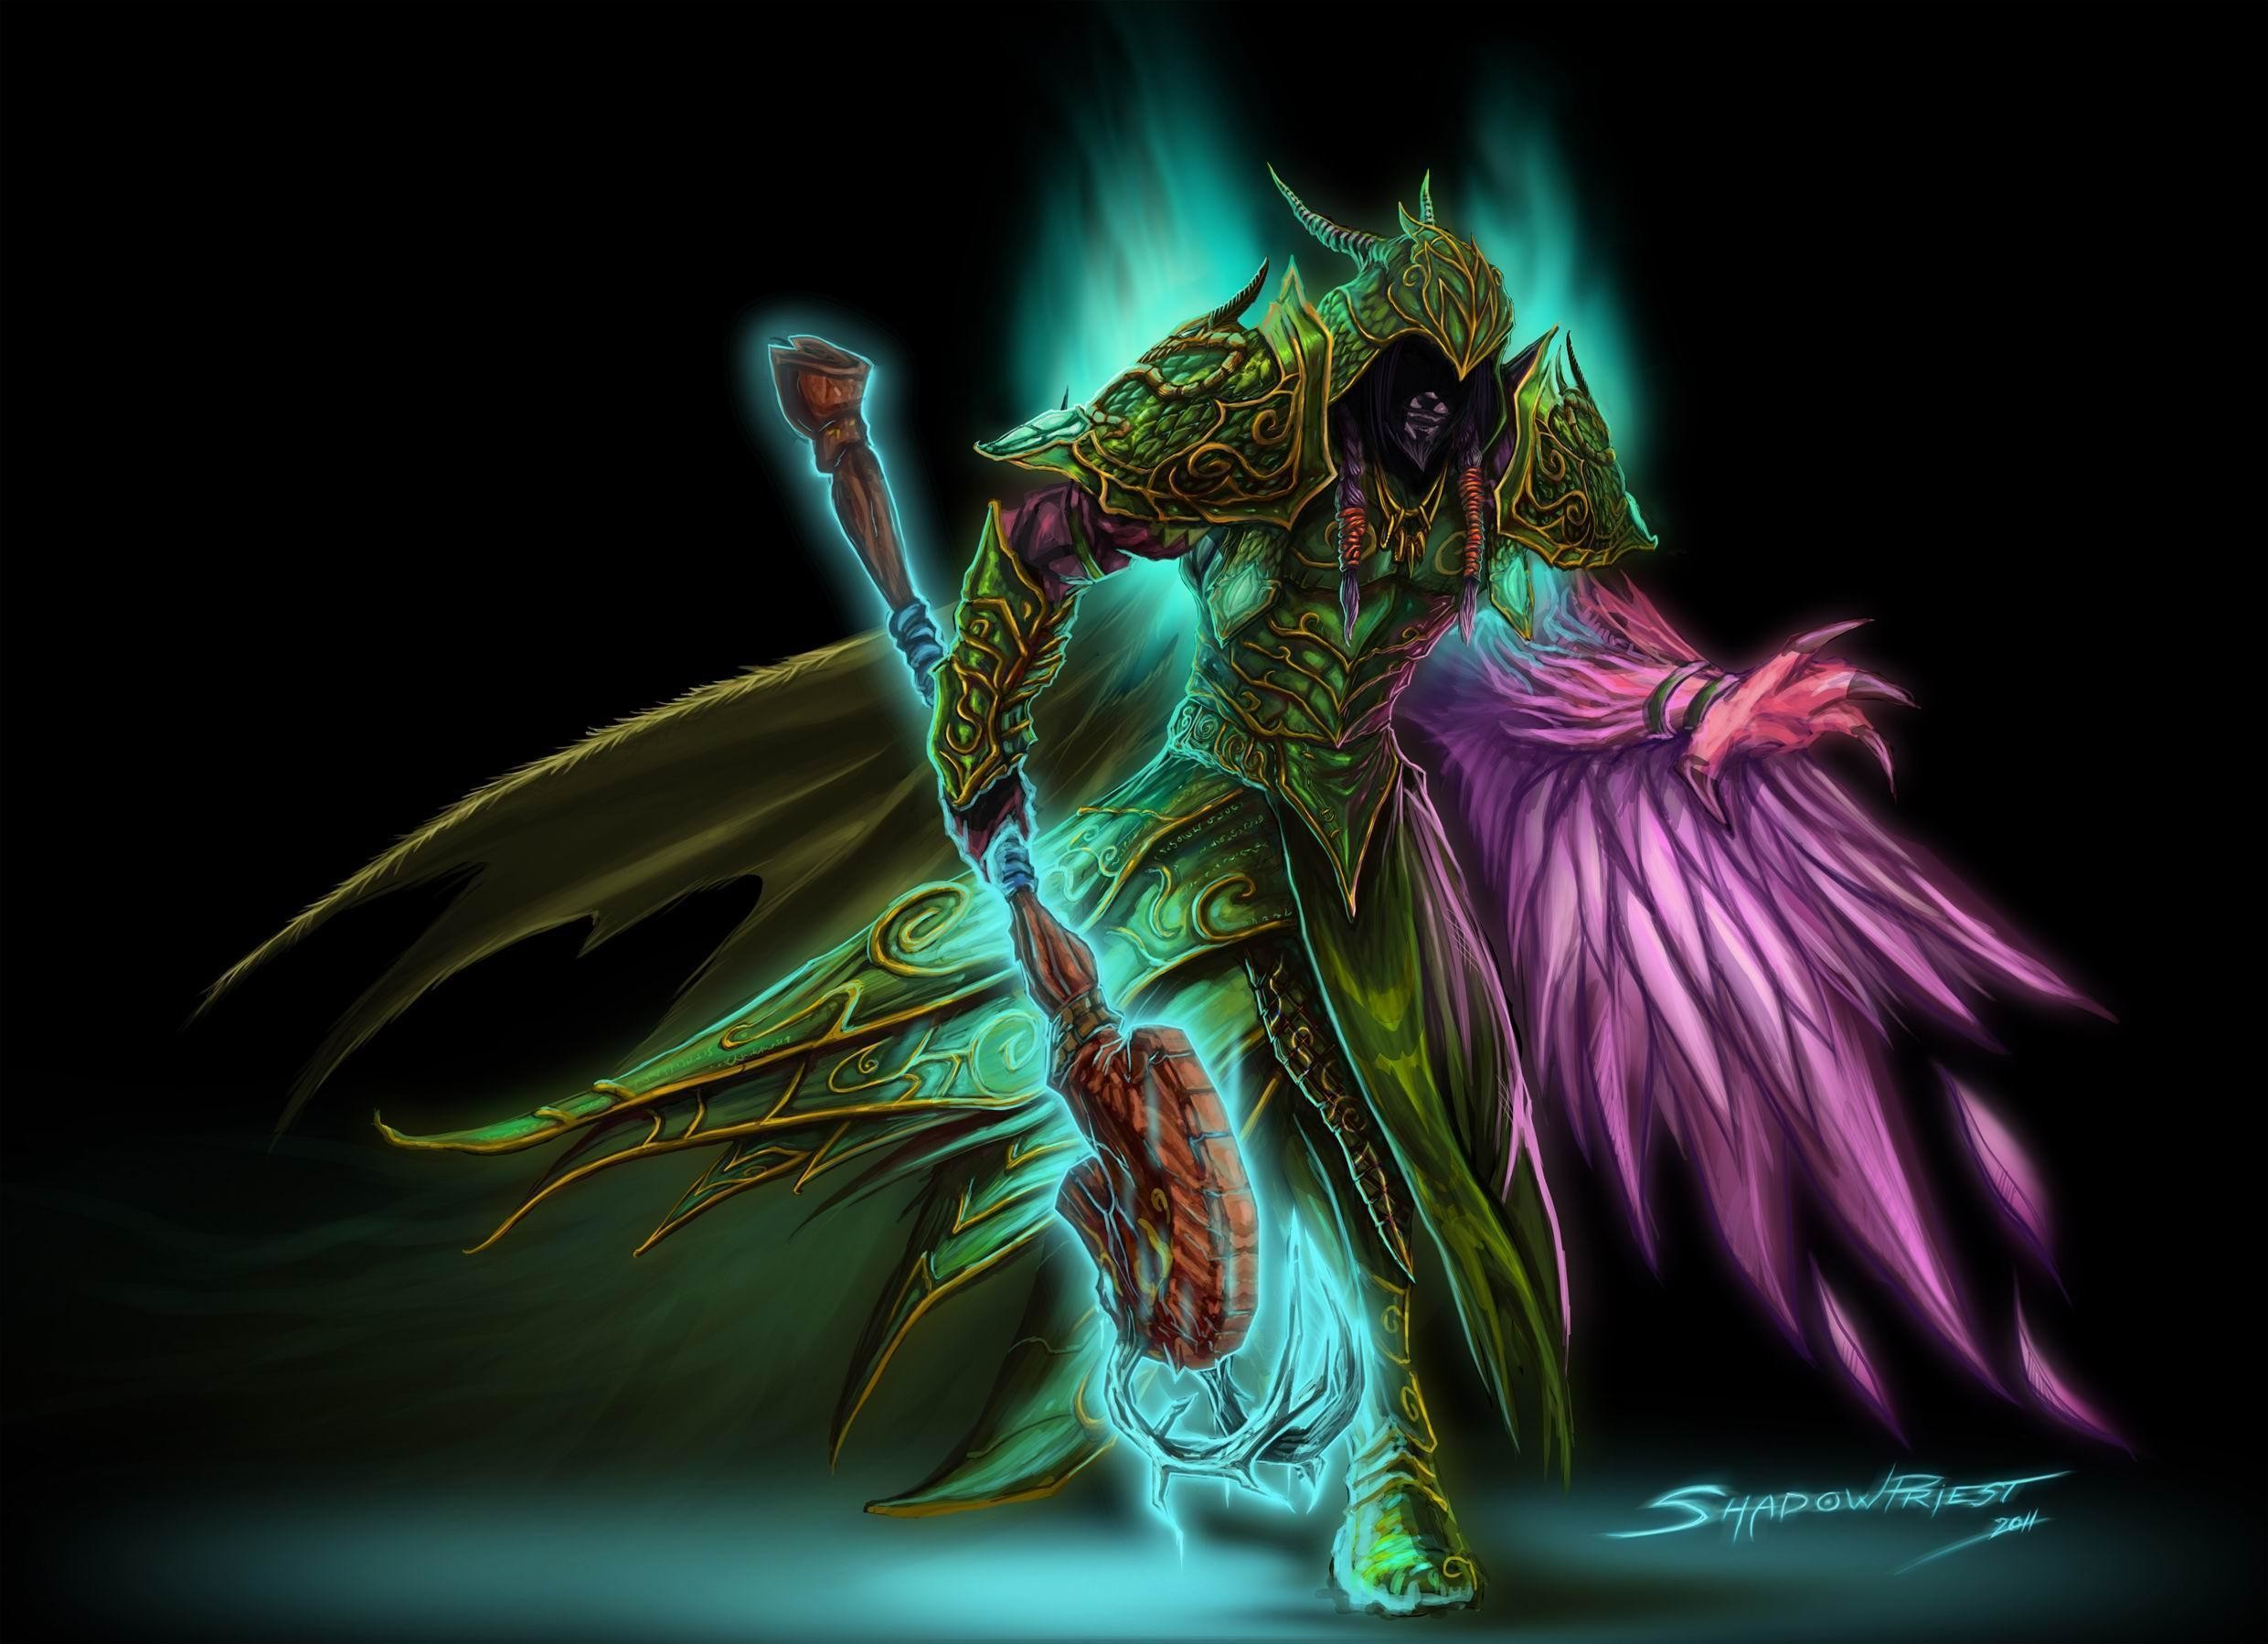 Res: 2481x1798, Night Elf Druid WOW | HD Wallpapers